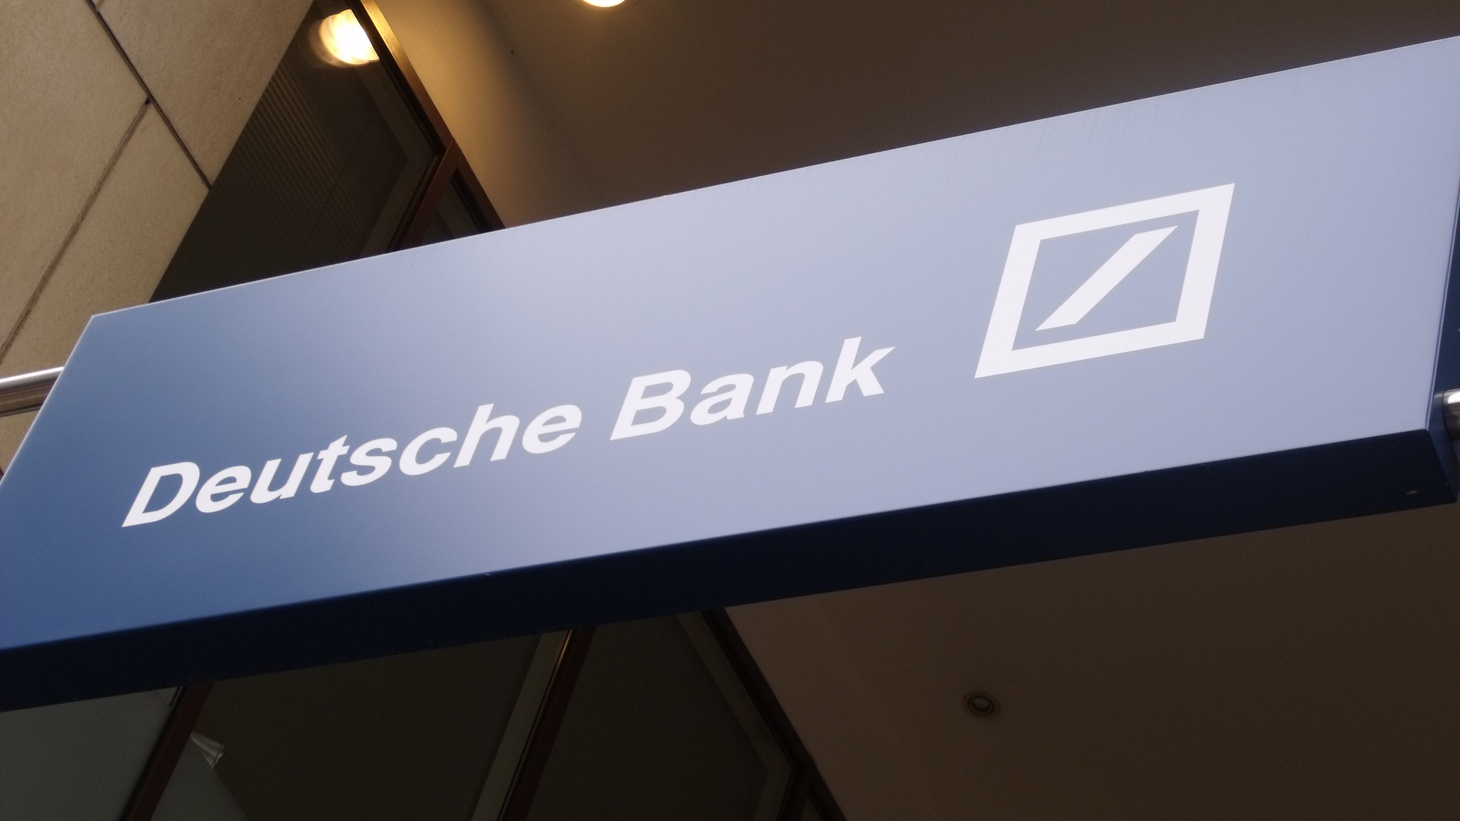 Deutsche Bank sign in England.